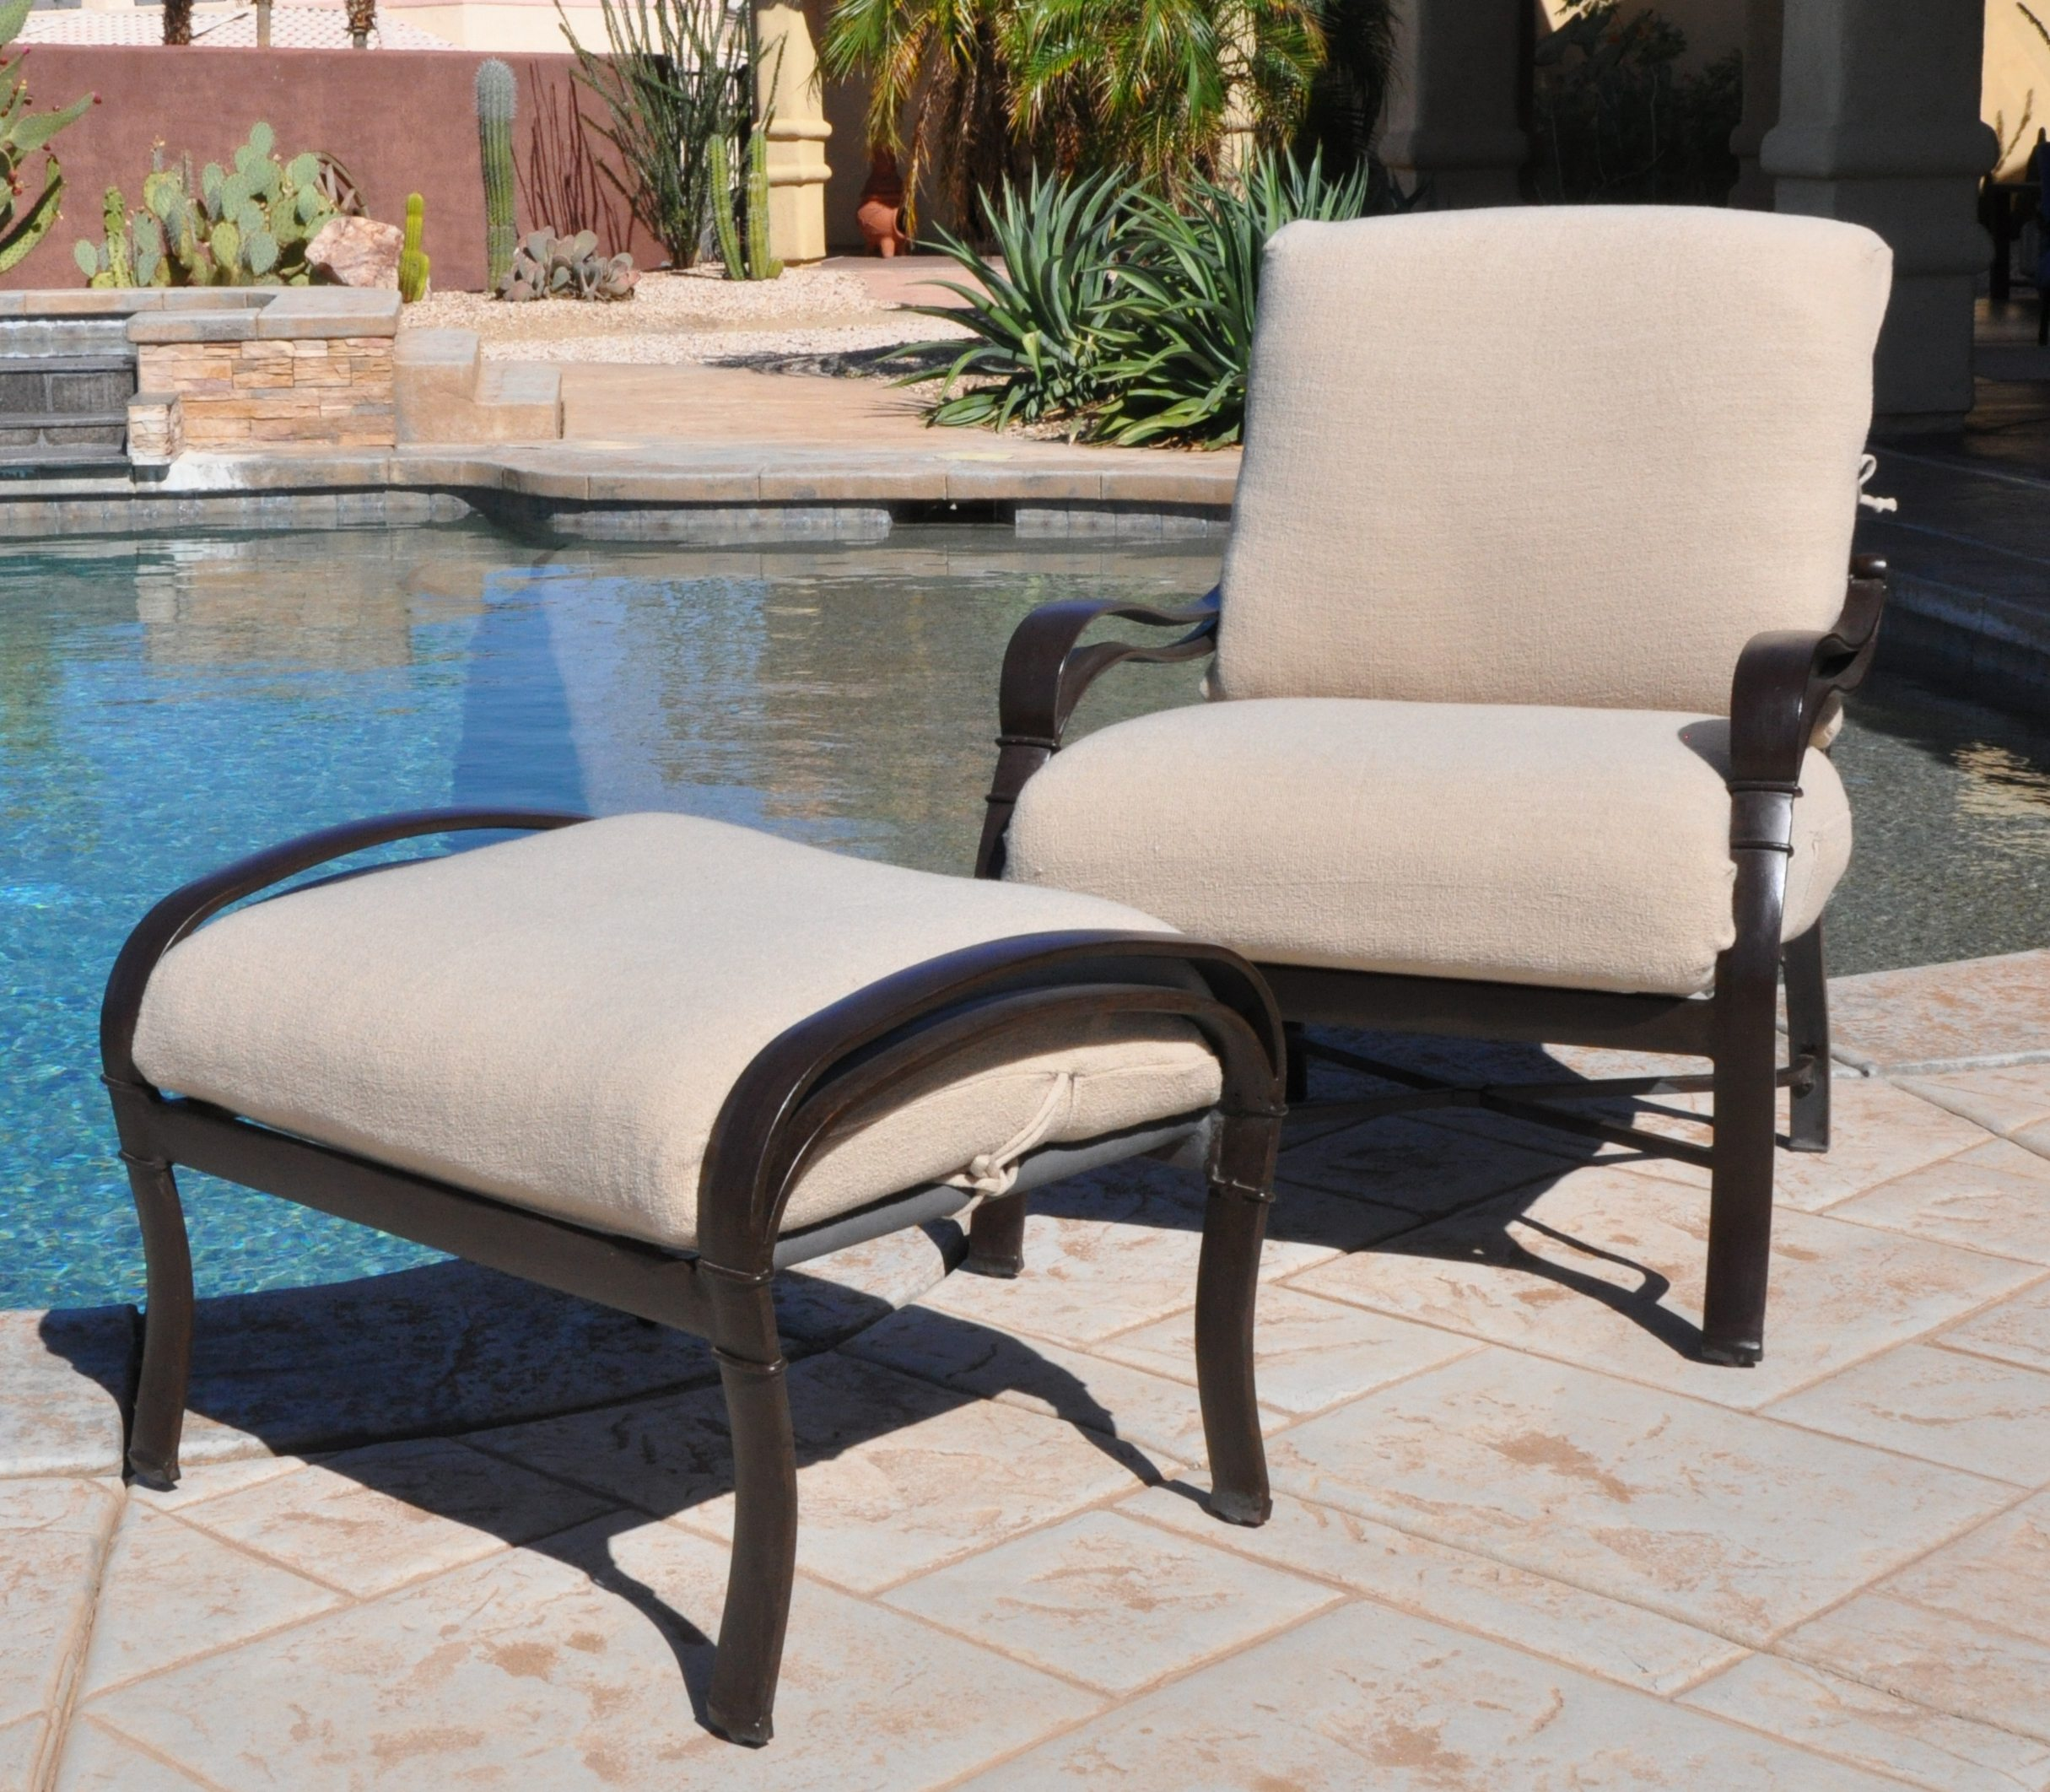 Outdoor Deep Seat Cushion Slipcovers (2 Piece)